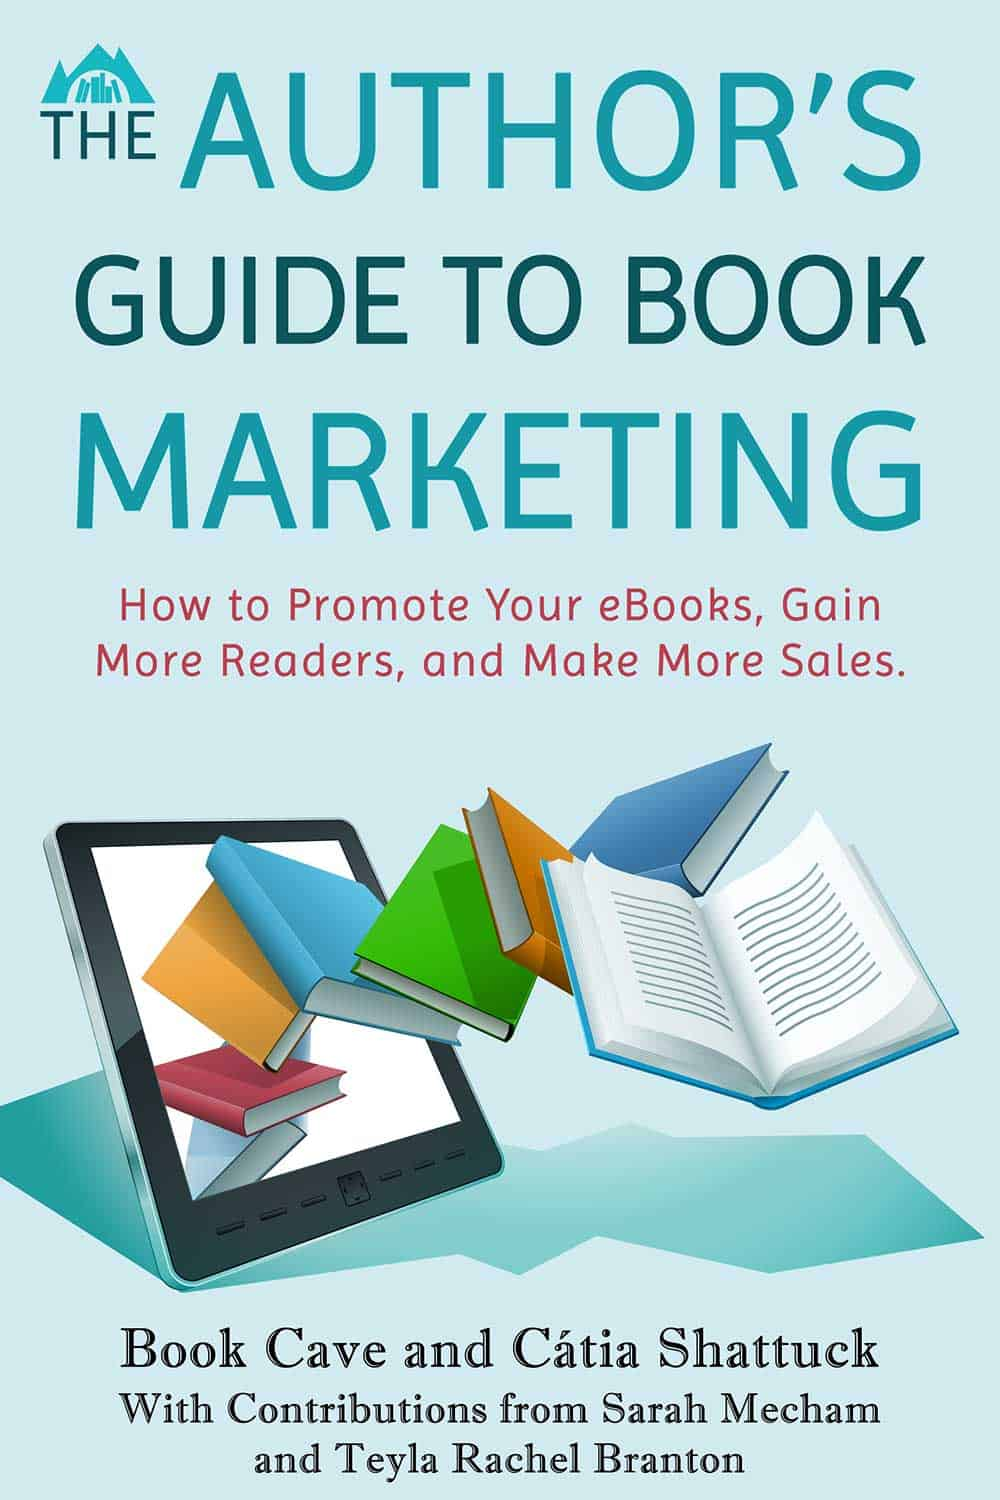 the ebook marketing guide